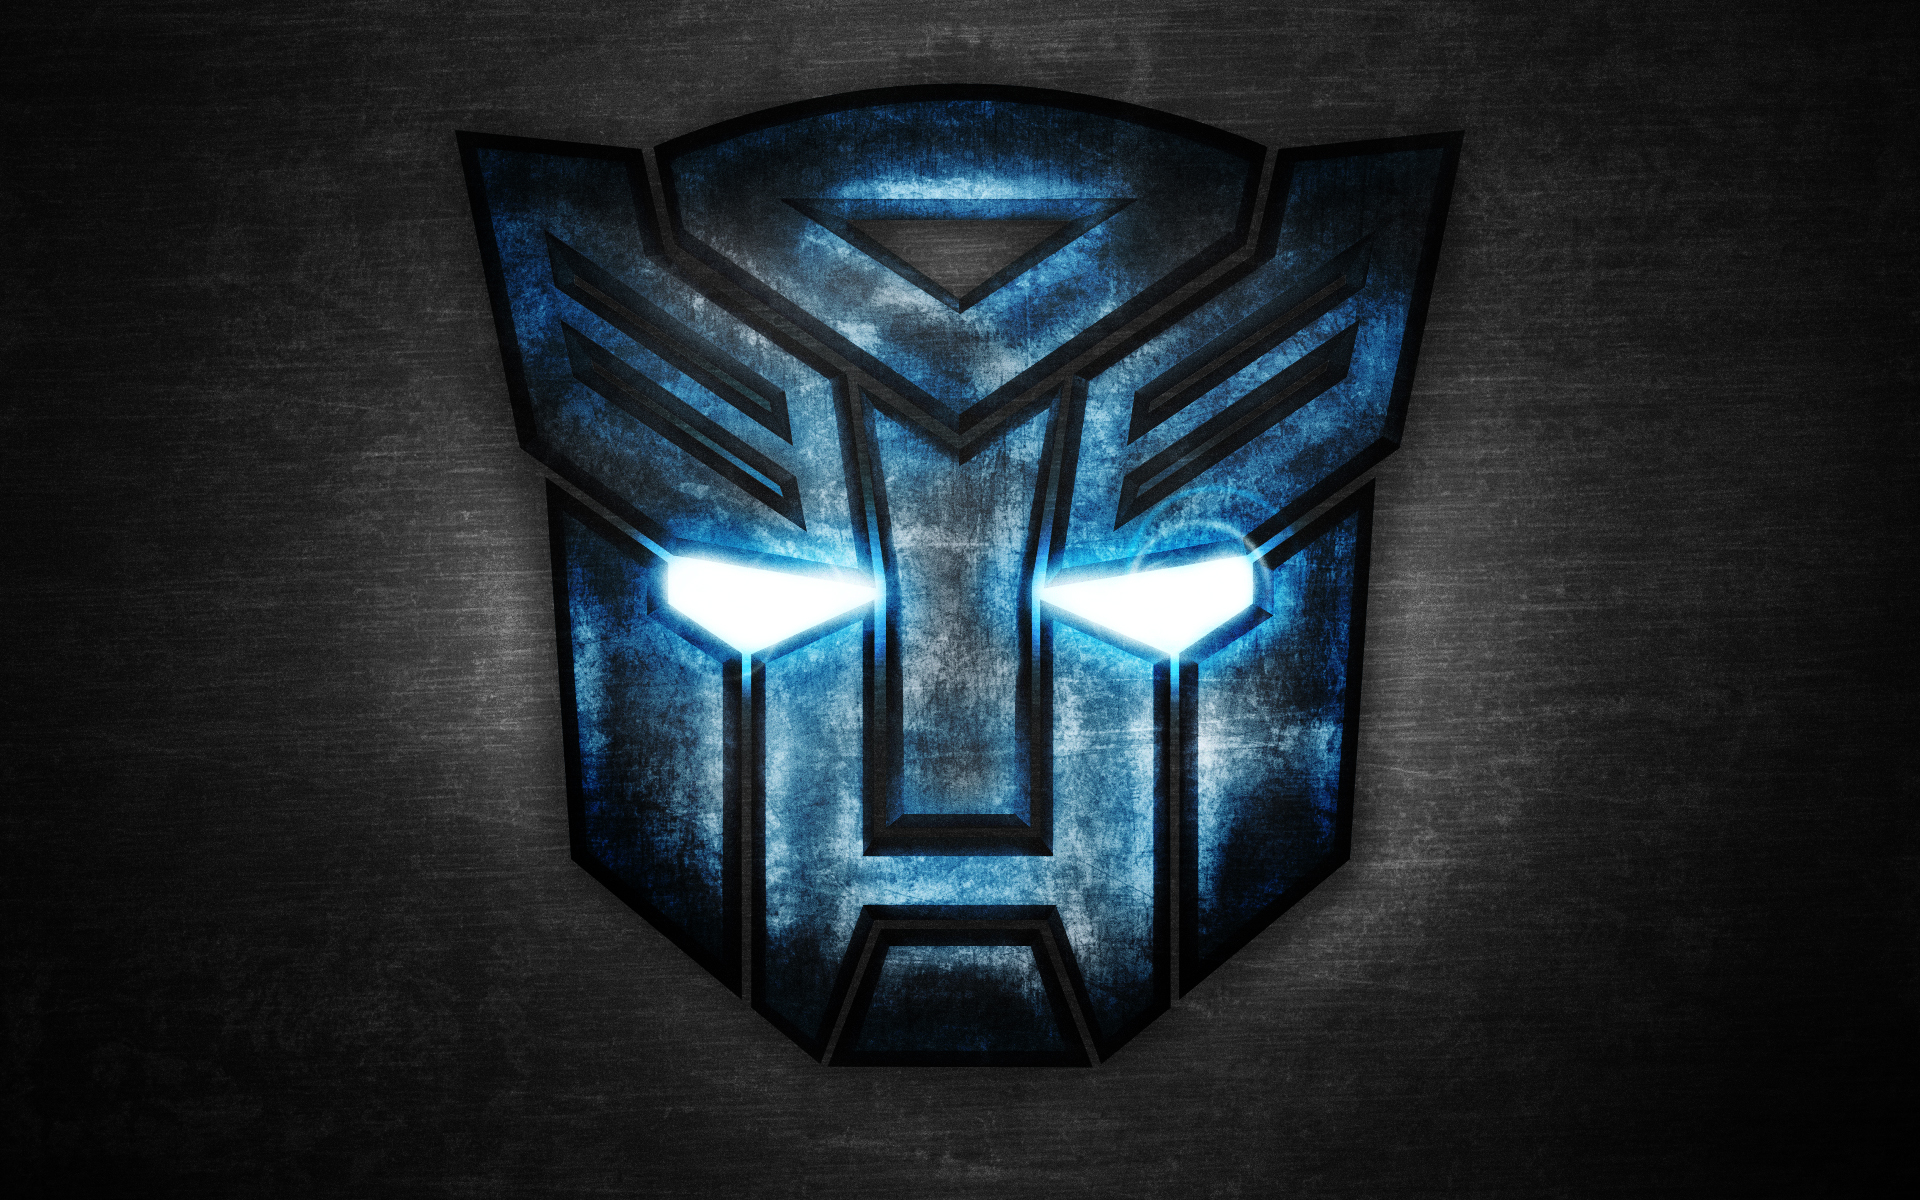 transformers wallpapers 8 1920x1200